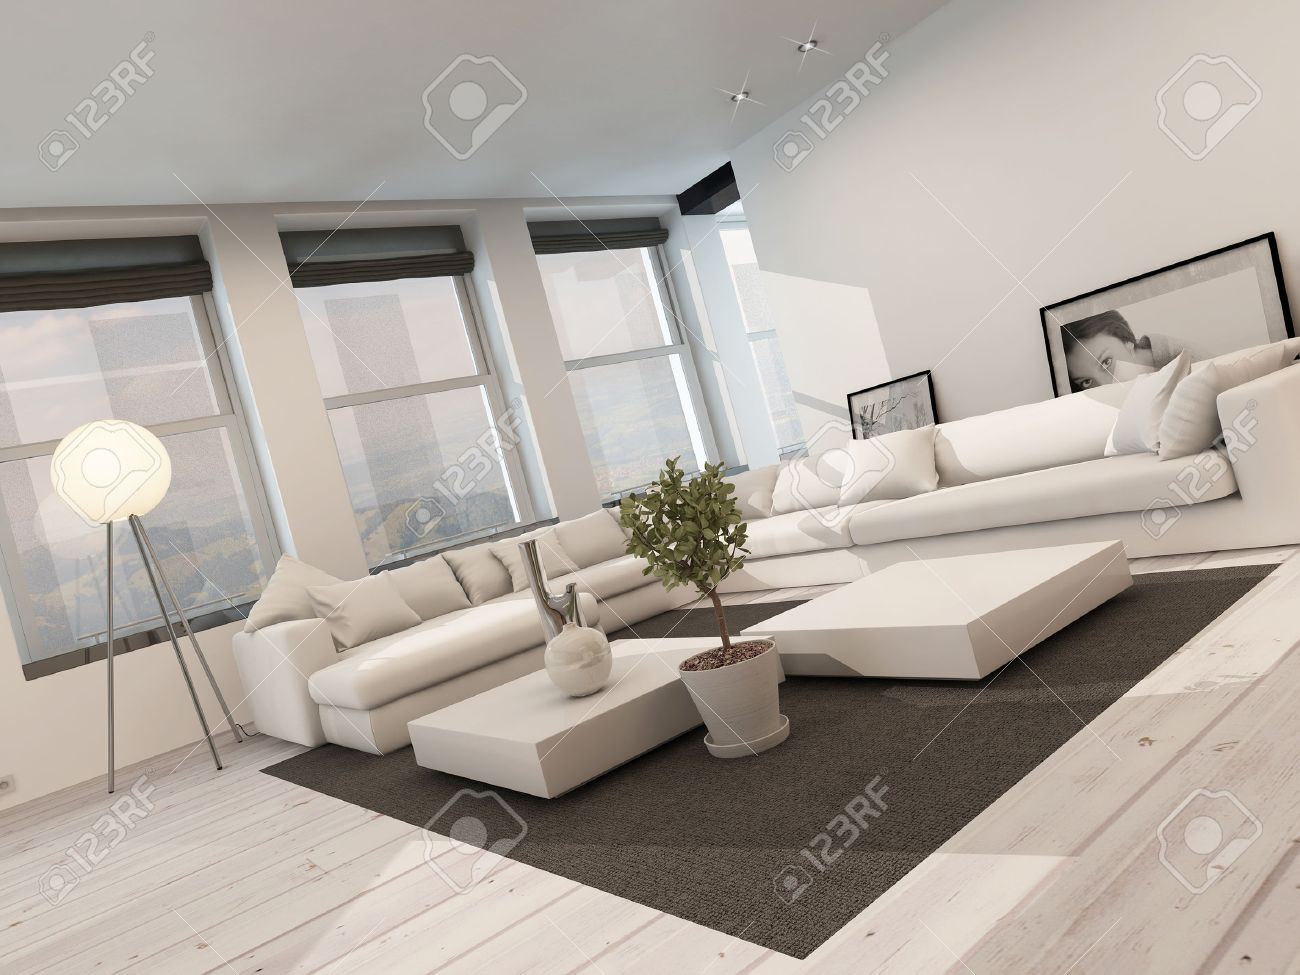 Modern Black And White Sitting Room Interior With Painted White Floorboards  With A Black Carpet,